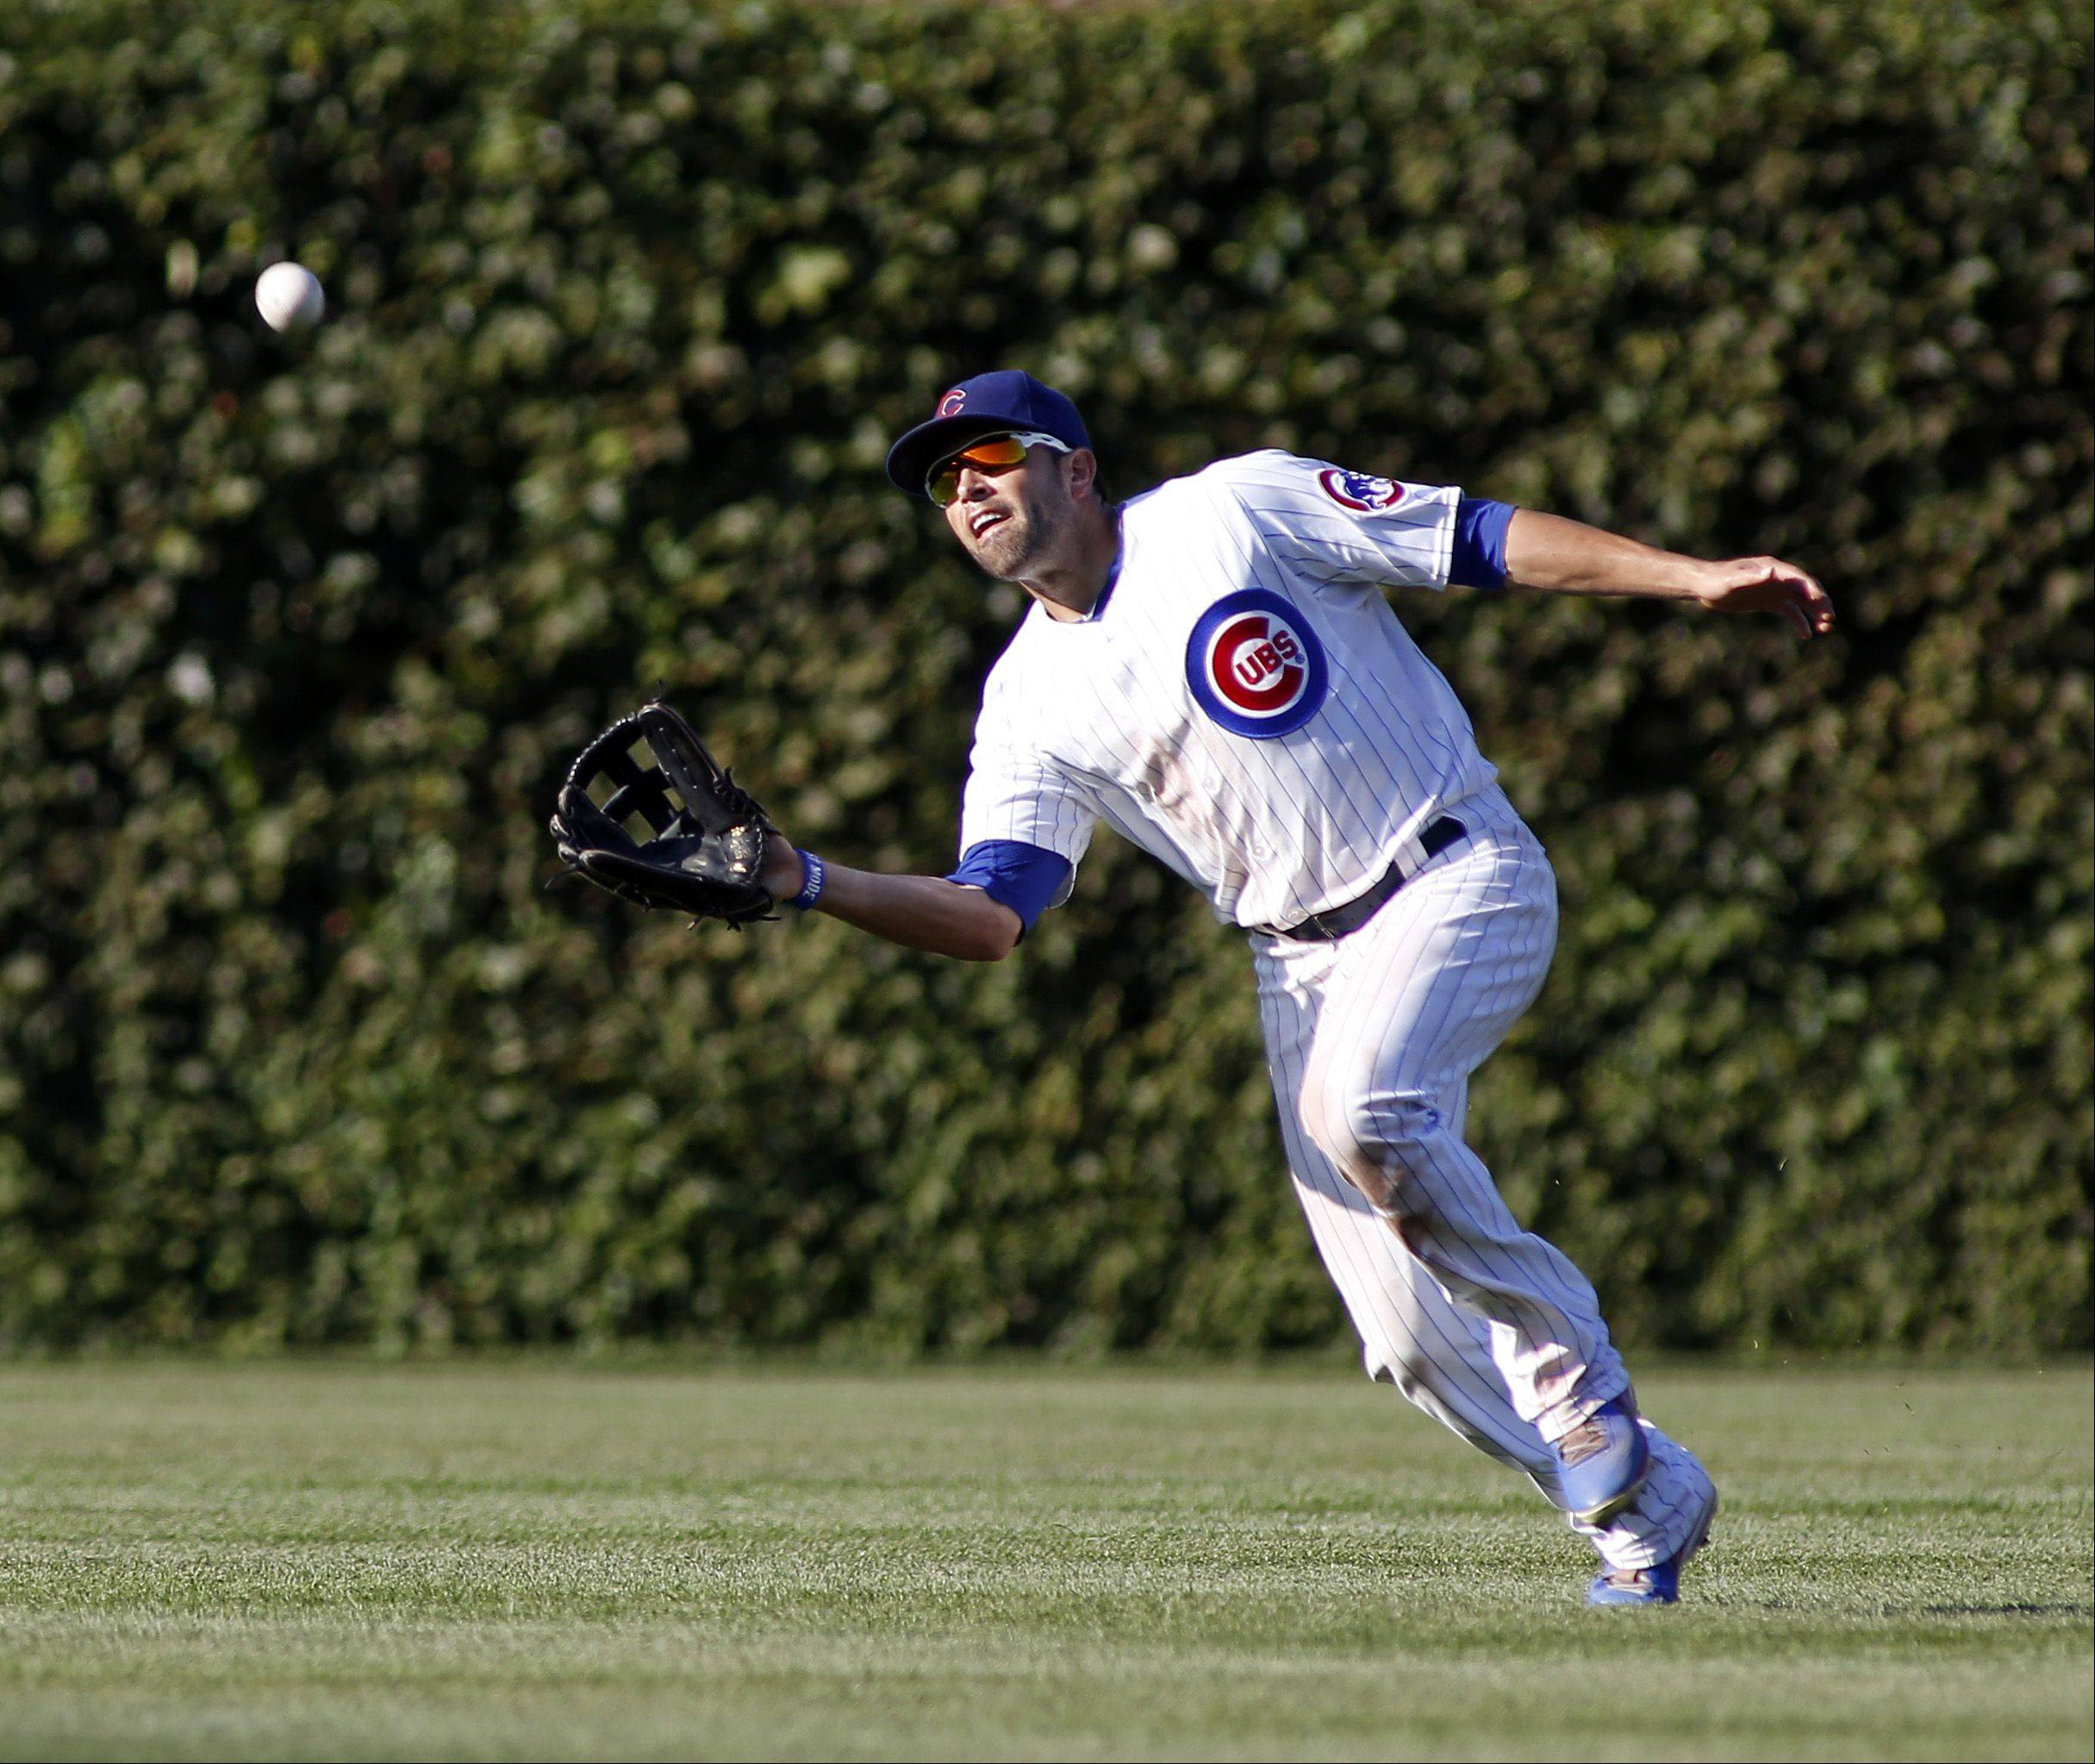 The Cubs dealt outfielder David DeJesus on Monday to the Washington Nationals.